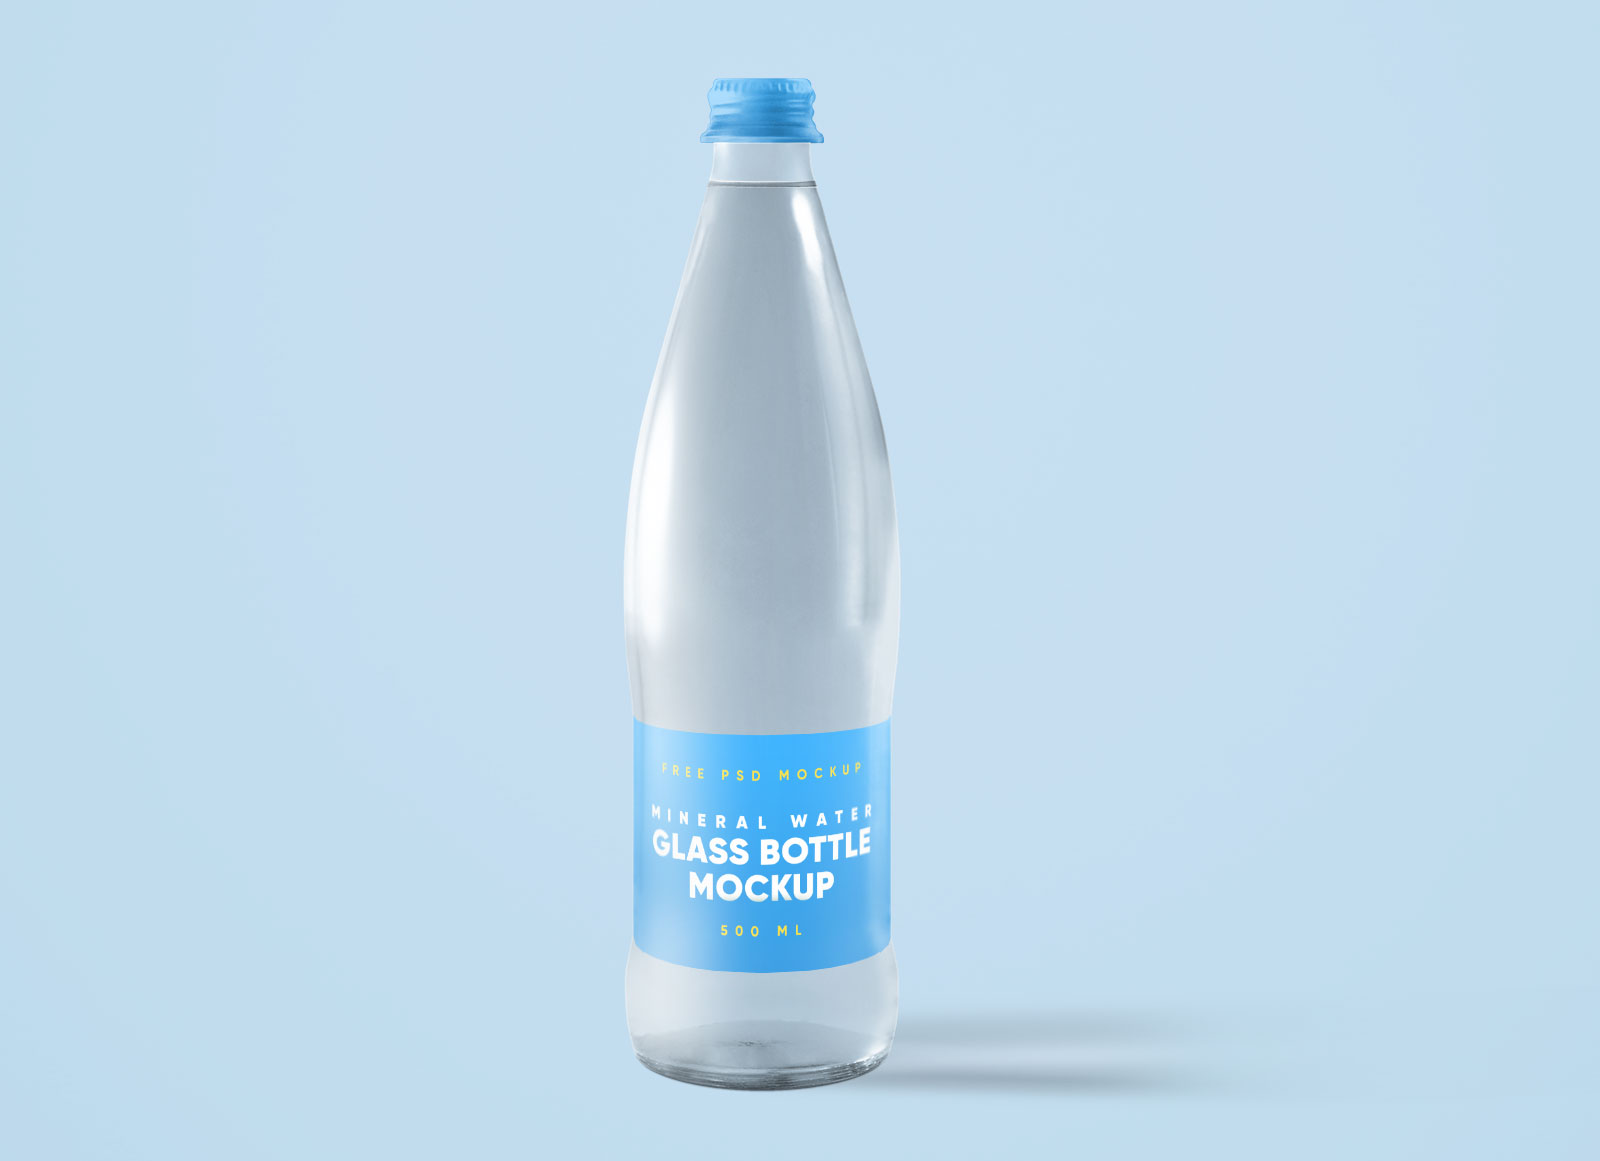 Free Glass Mineral Water Bottle With Cap Mockup PSD